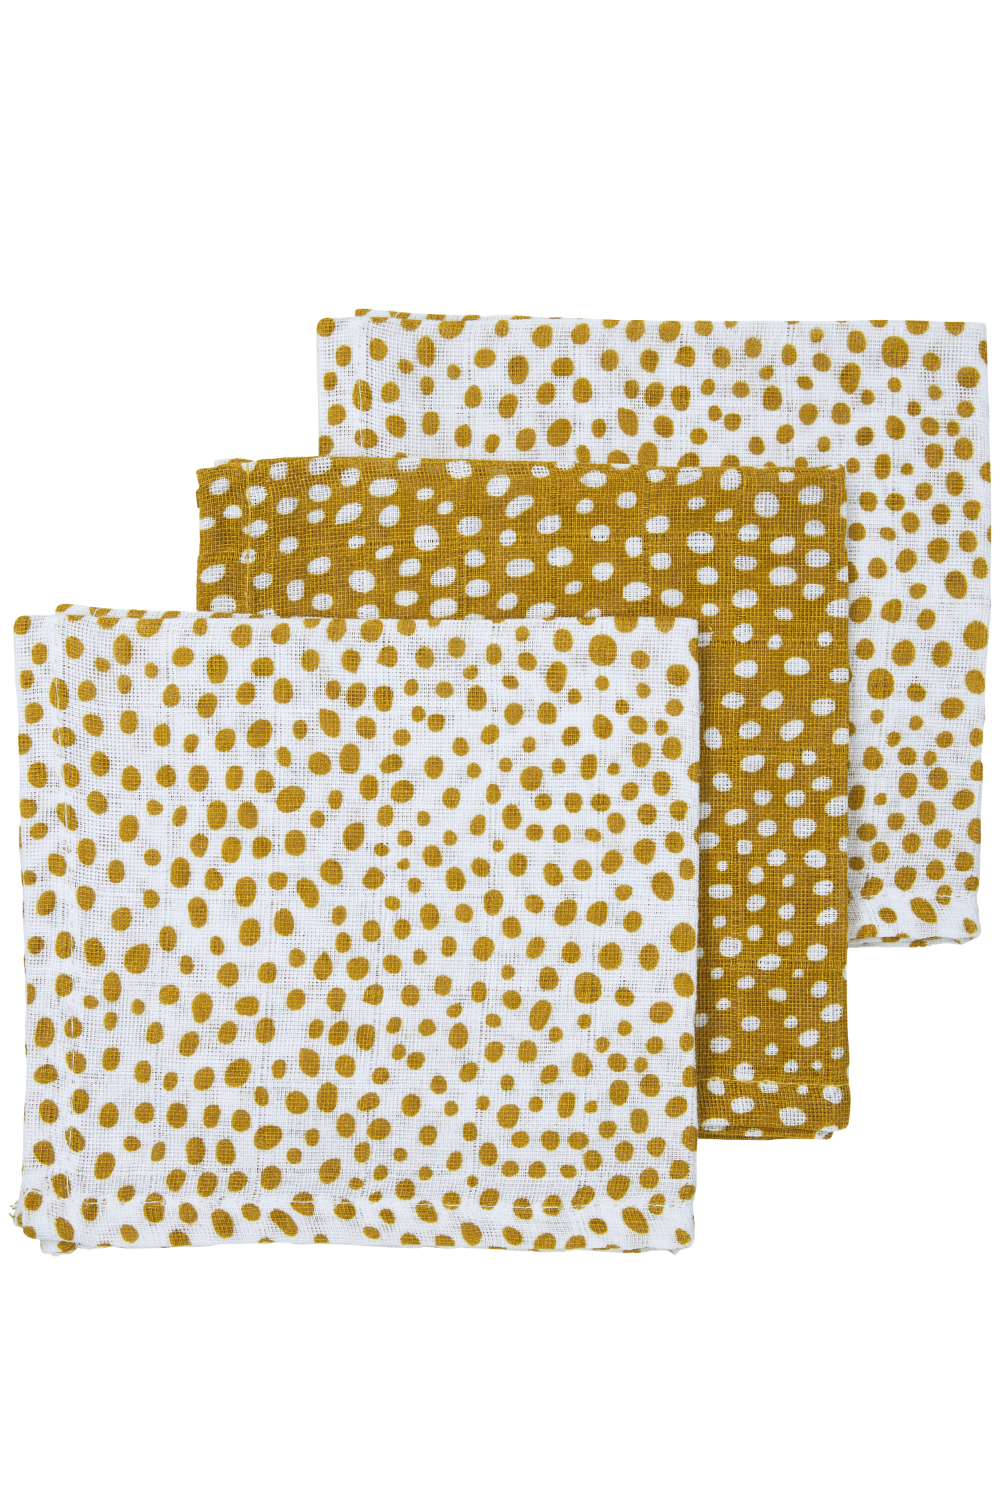 Hydrofiele Monddoekjes 3-Pack Cheetah - Honey Gold - 30x30cm